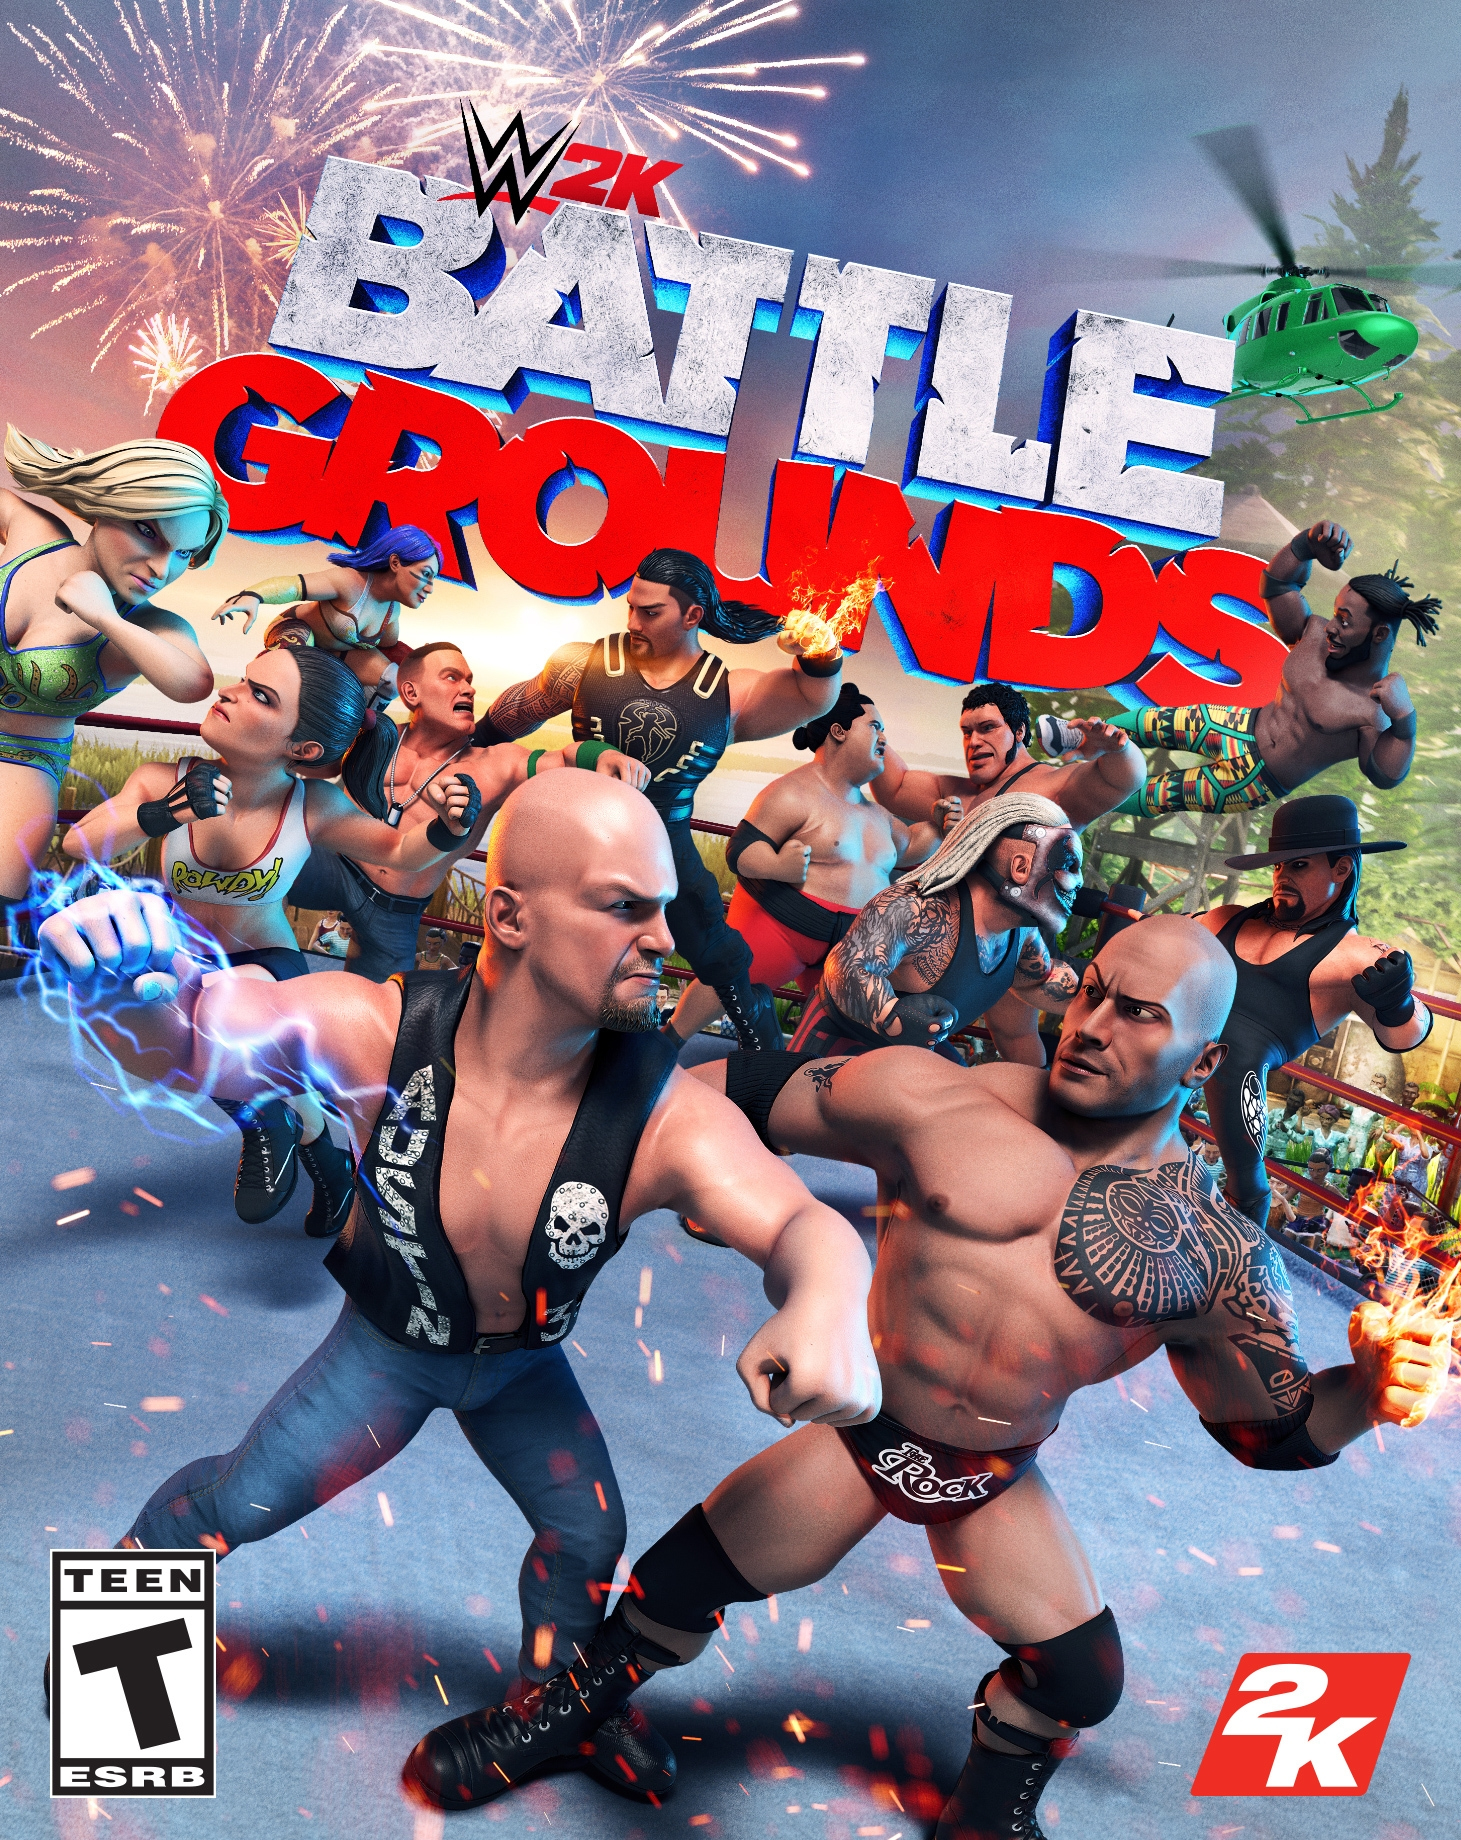 Download WWE 2K BattleGrounds-CHRONOS In PC [ Torrent ]